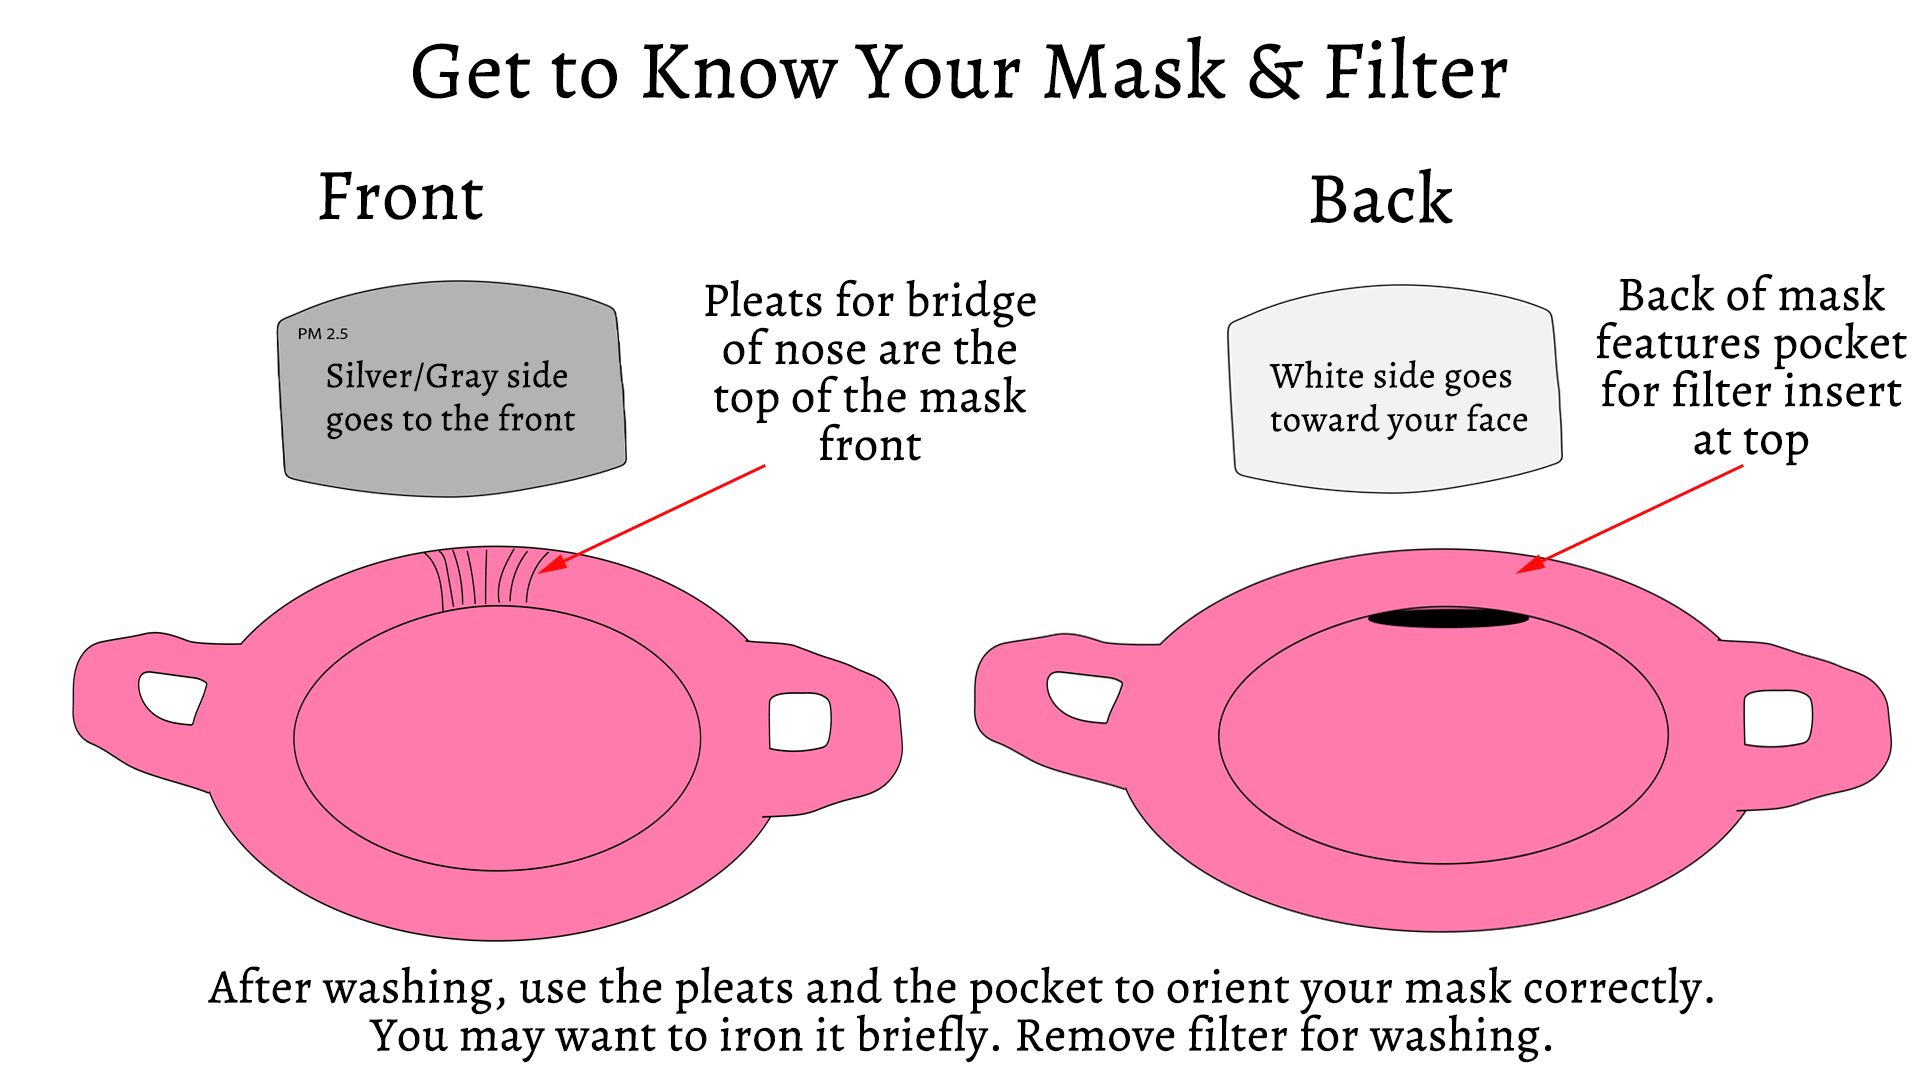 Get to know your mask